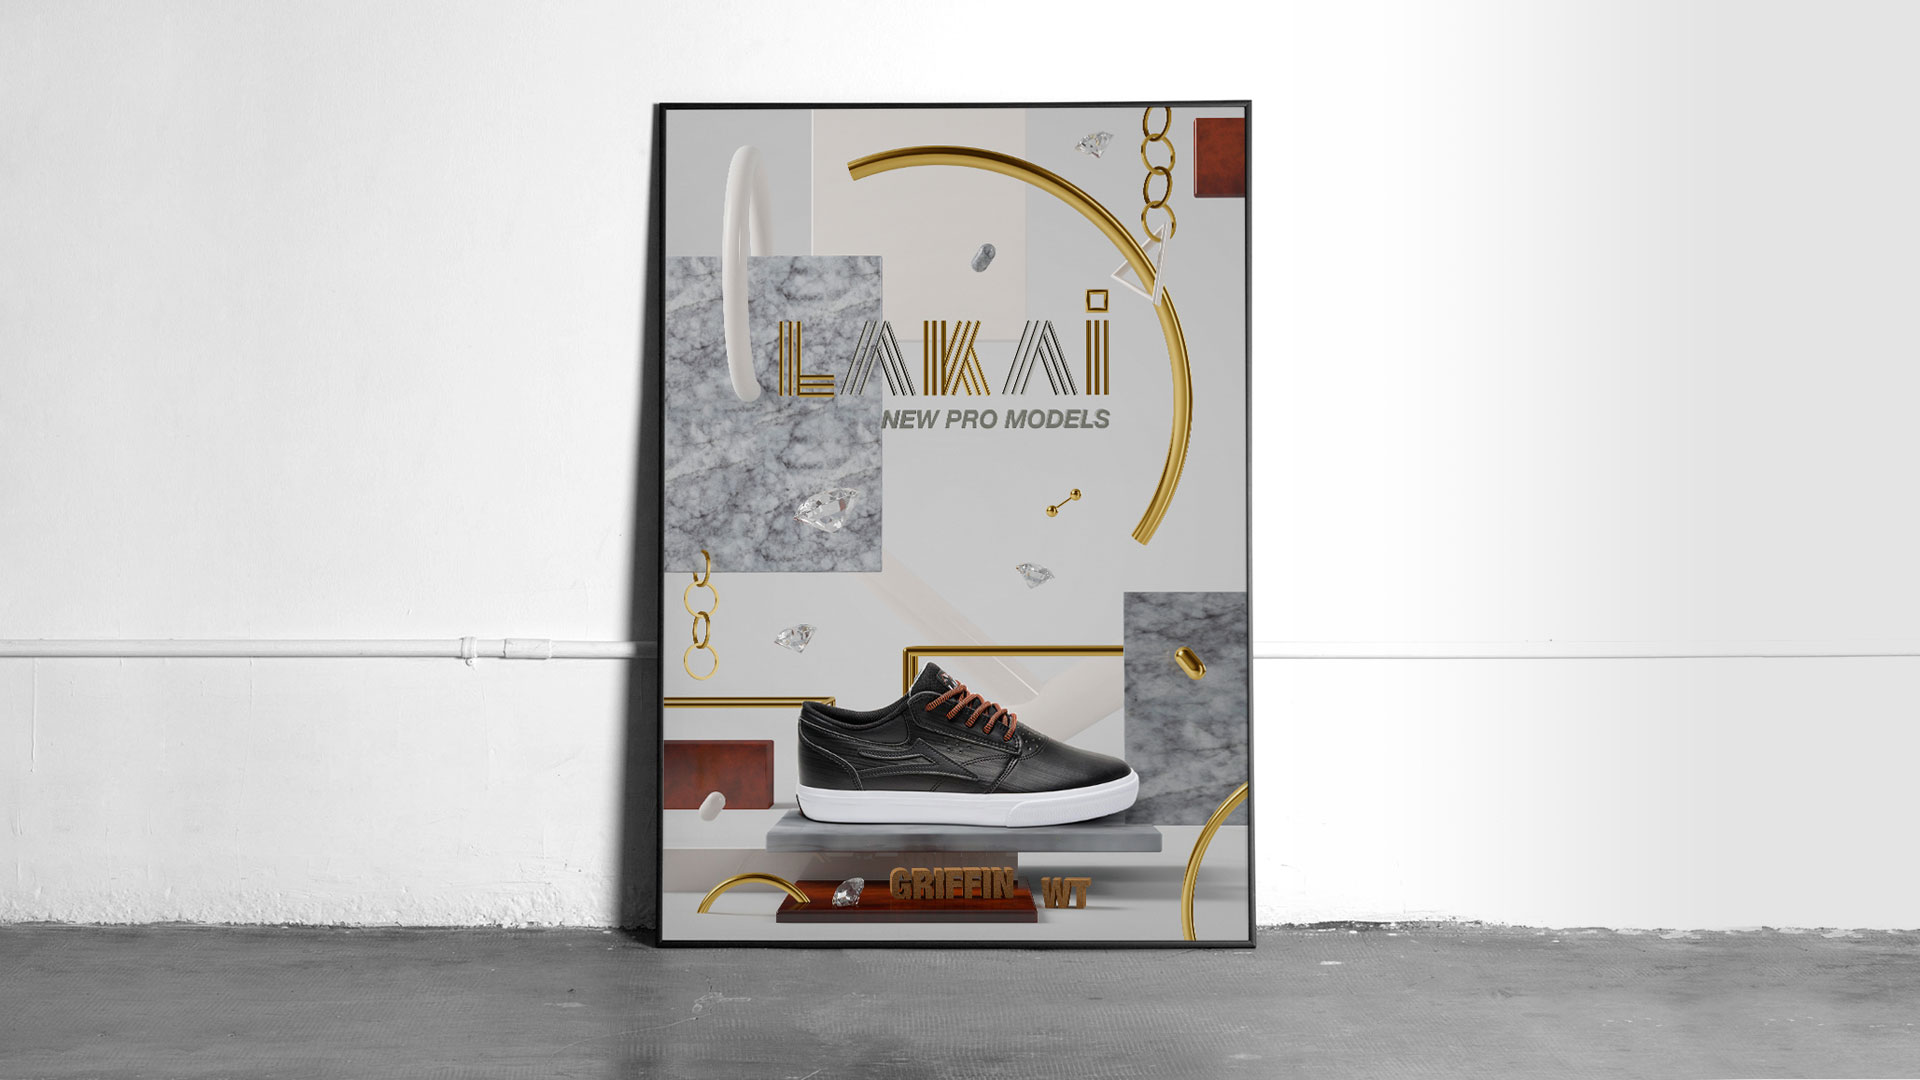 advertising_lakai_shoes_artdirection_cover